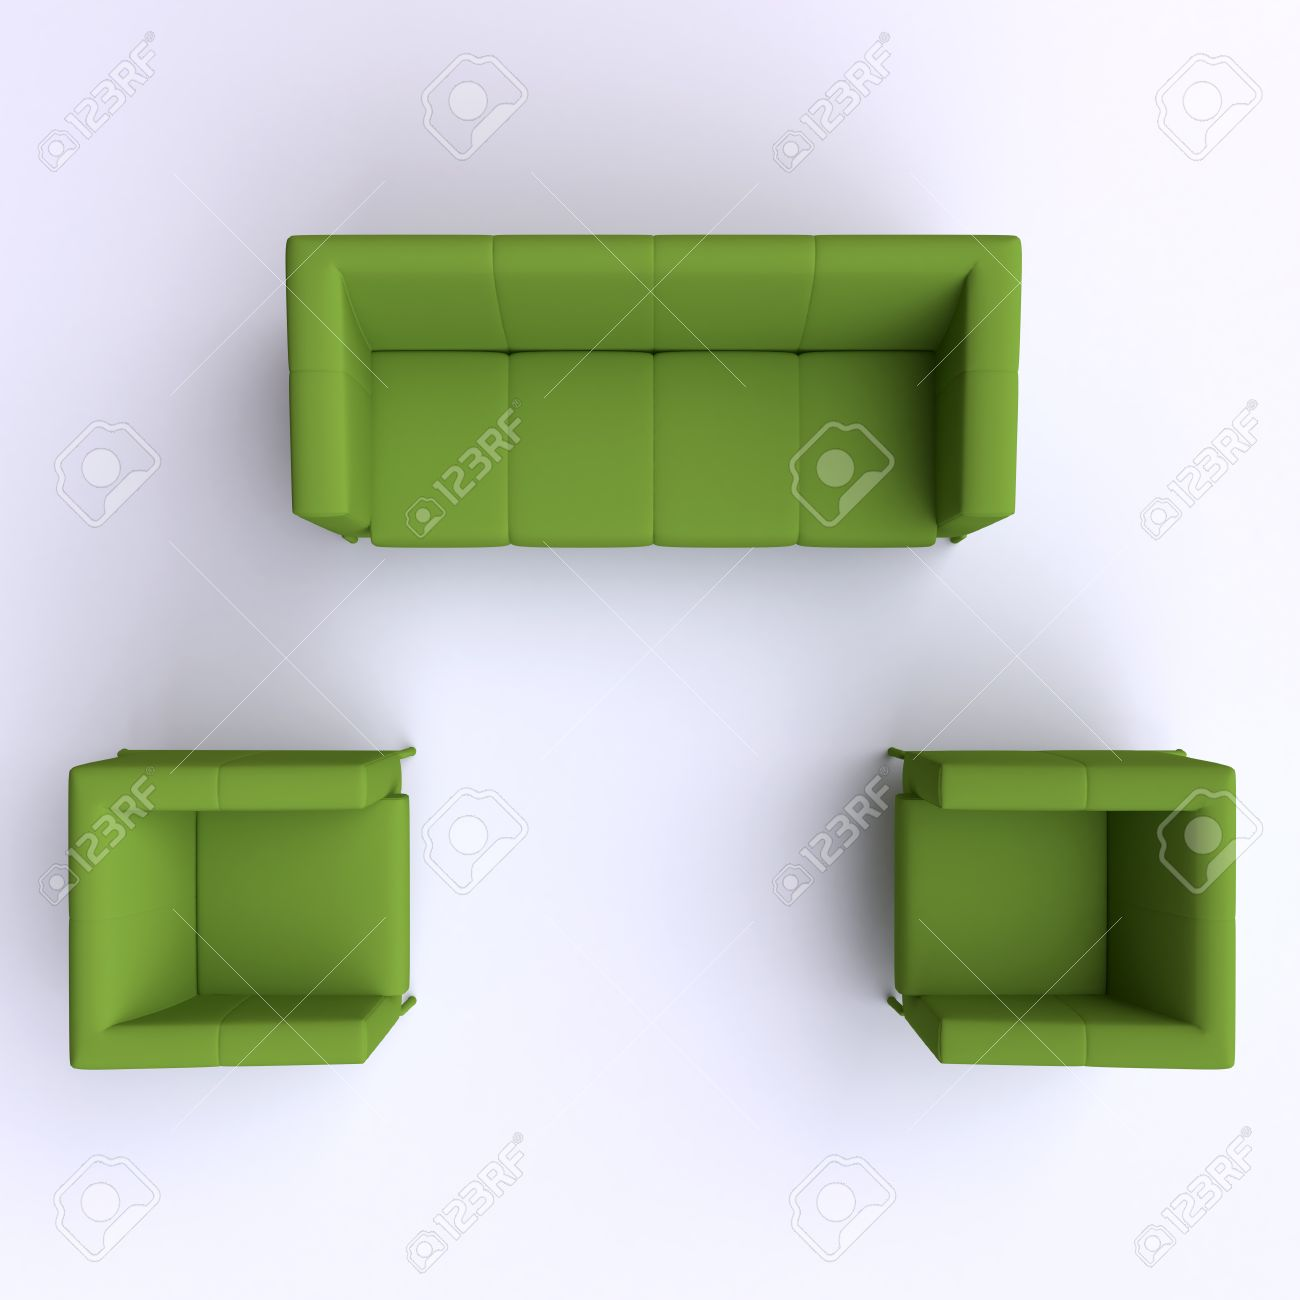 Sofa And Two Chairs Top View Stock Photo Picture And Royalty Free